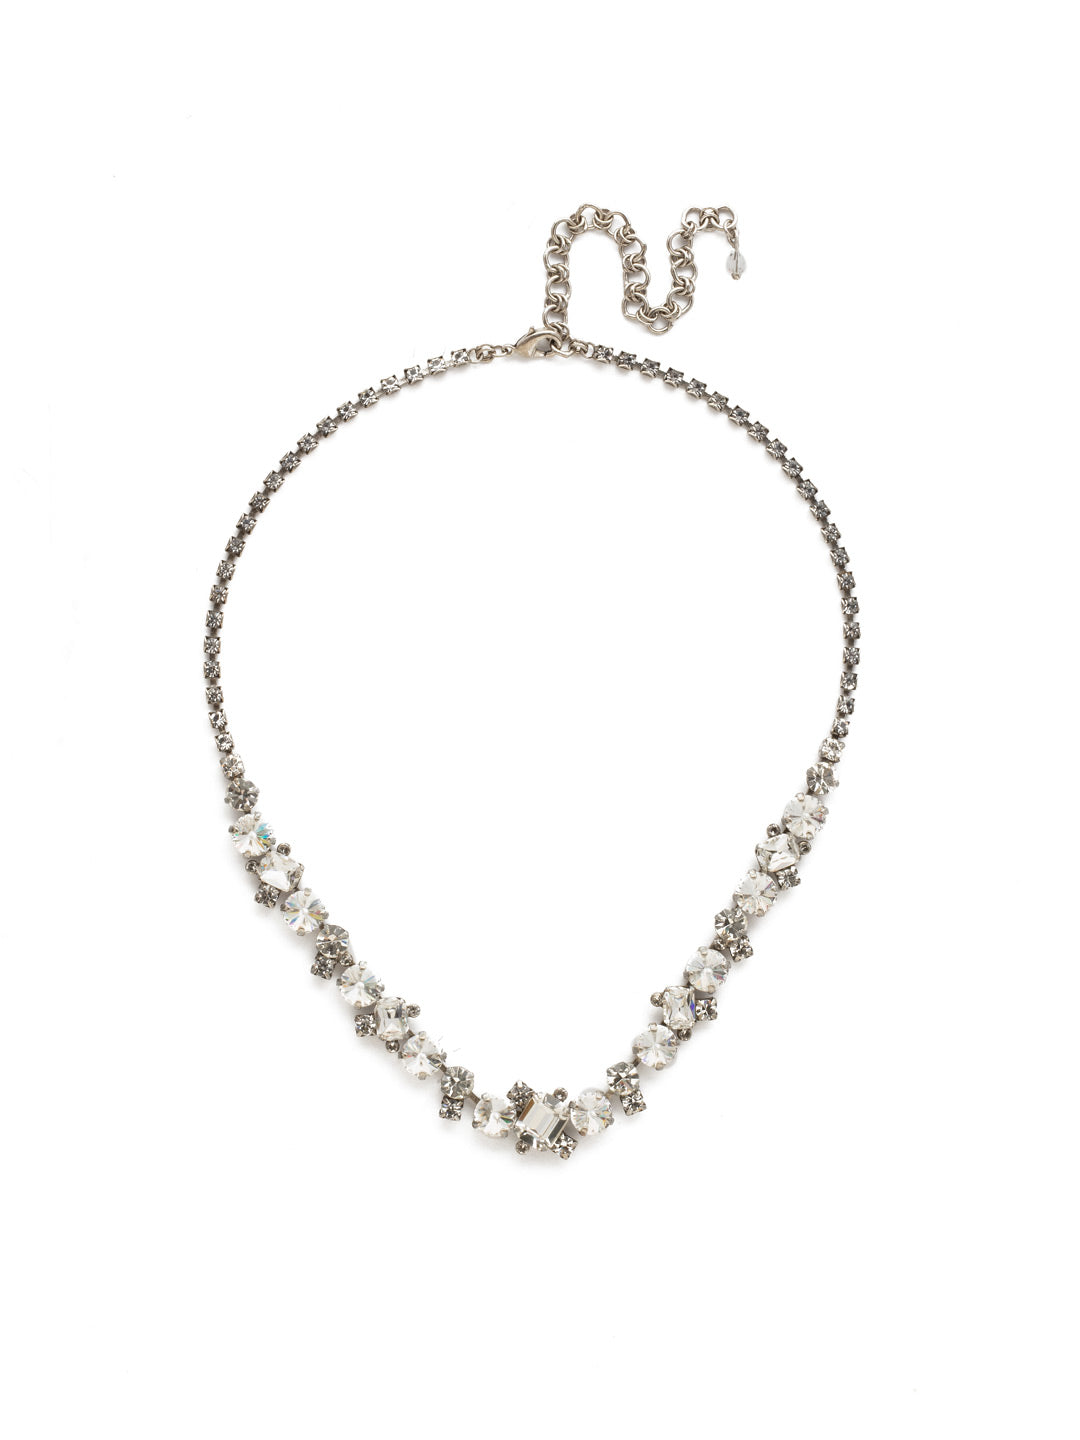 Sophisticated Tennis Necklace - NDK17ASCRY